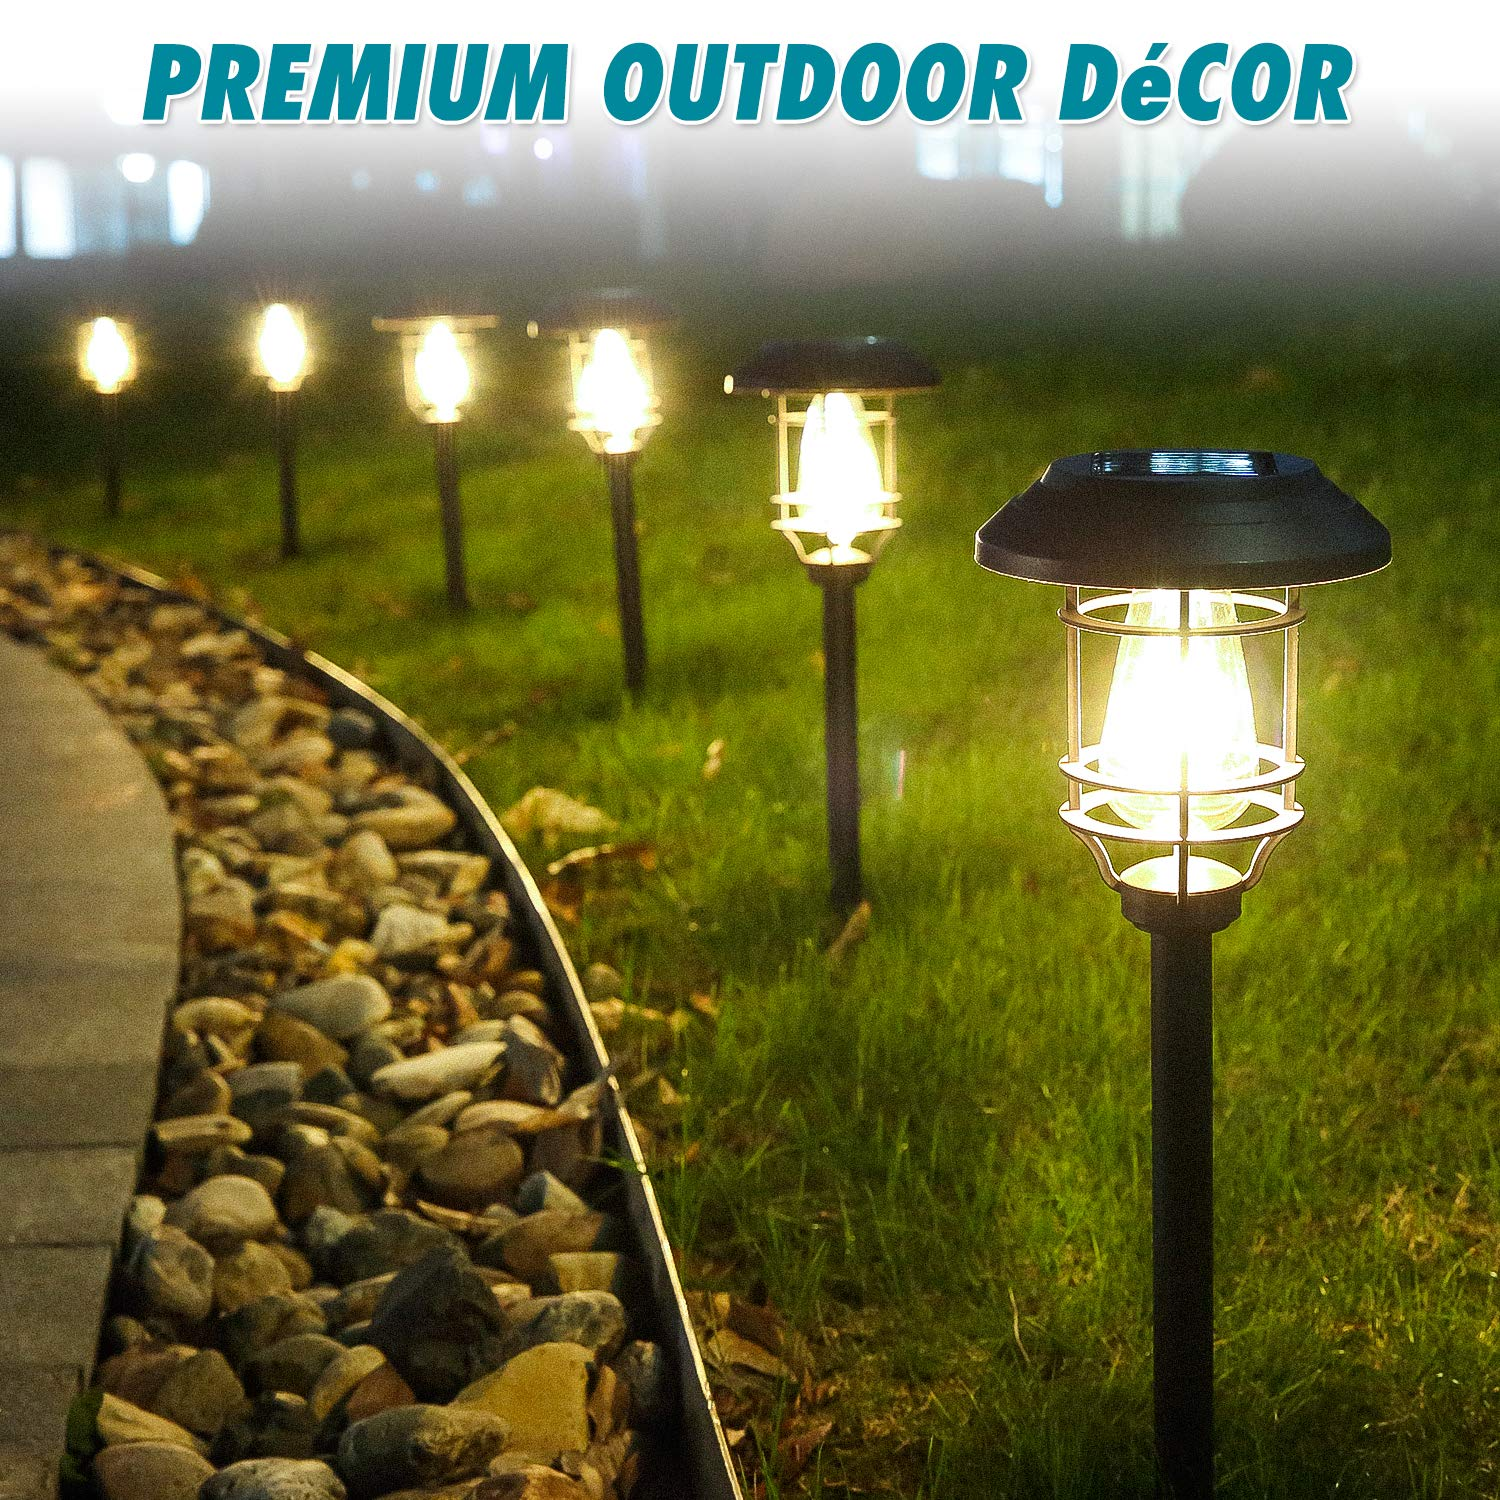 HECARIM Solar Lights Outdoor, 6 Pack Solar Pathway Lights, Solar Powered Garden Lights, Waterproof LED Solar Landscape Lights for Walkway, Pathway, Lawn, Yard and Driveway by HECARIM (Image #4)